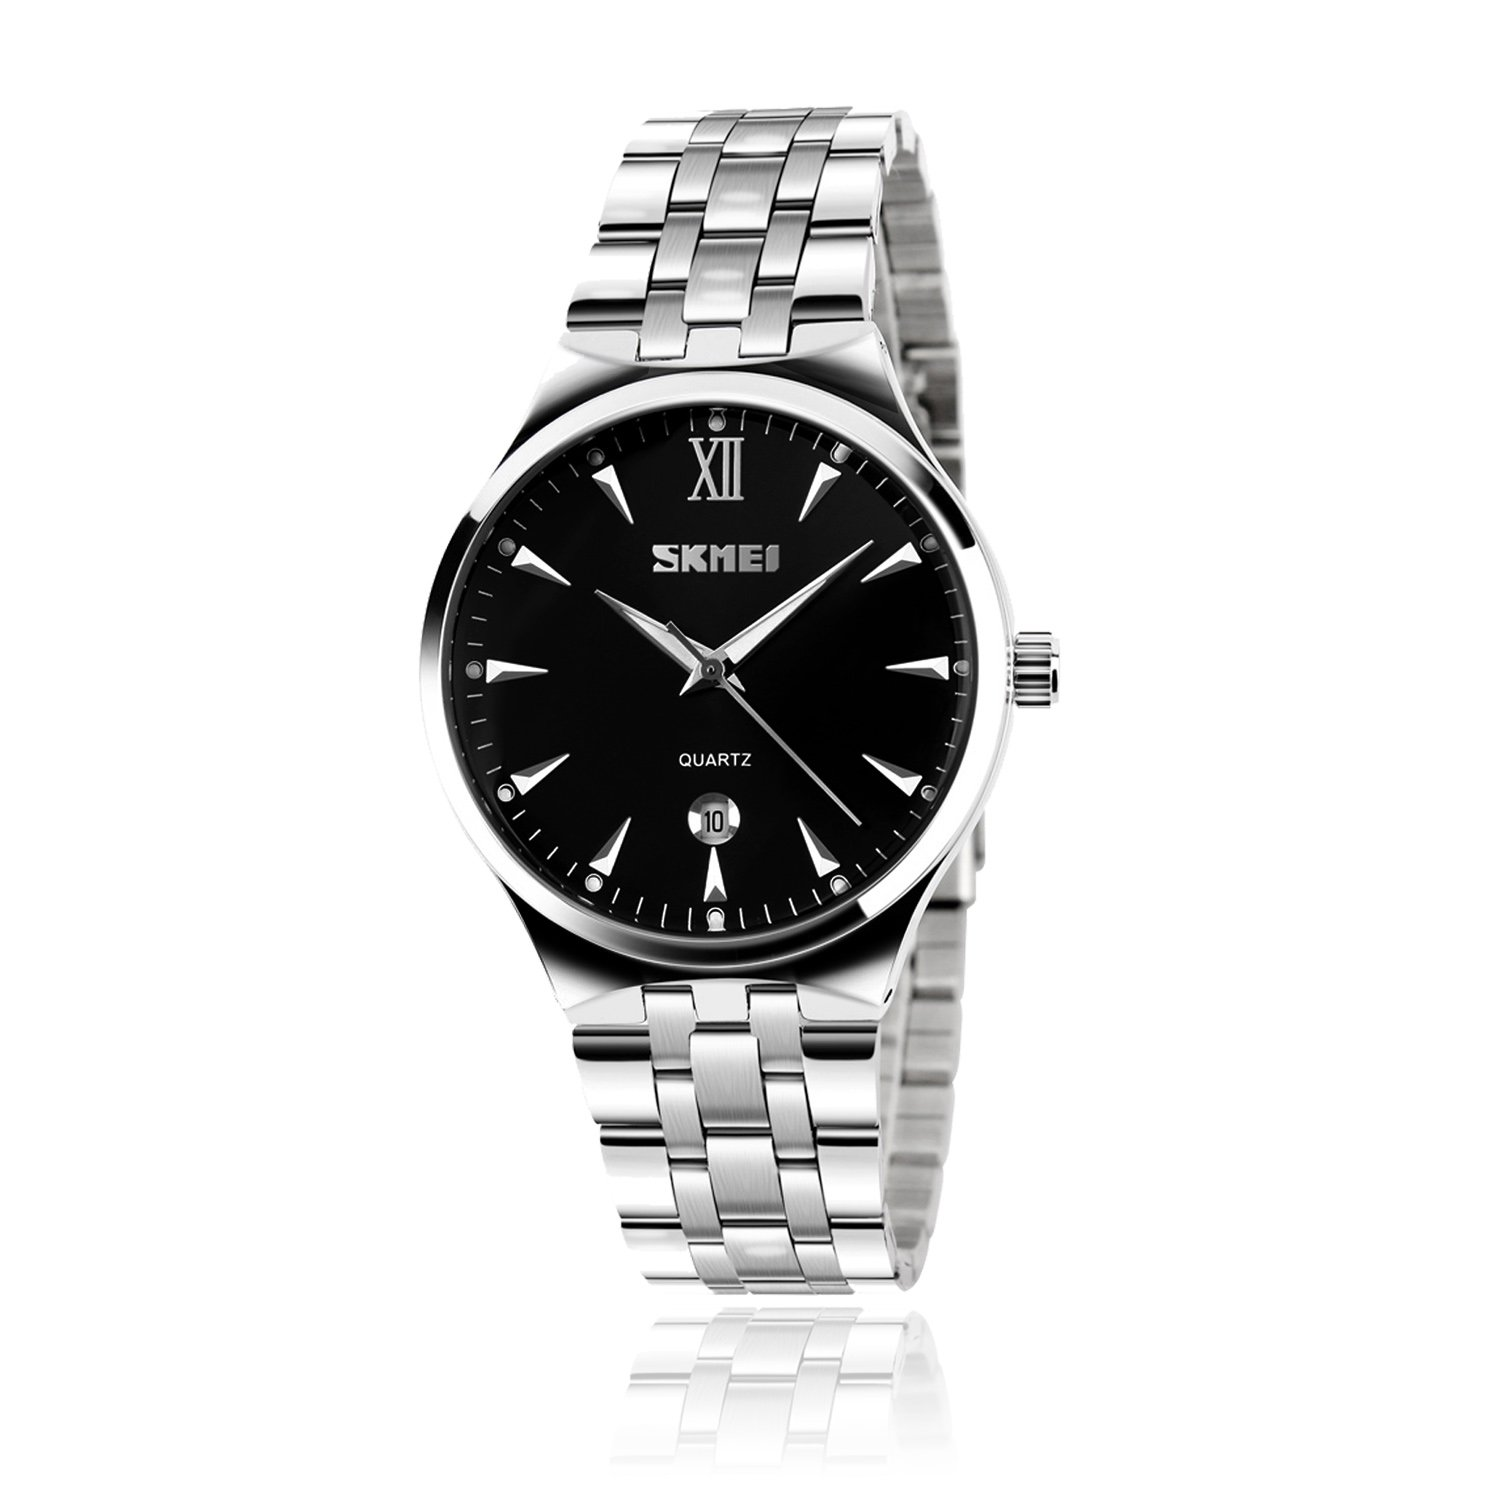 Mens Watch, Unique Quartz Analog Dress Business Casual Watches Stainless Steel Band Wrist Roman Numeral Waterproof Watch, Classic Calendar Date Window - Black